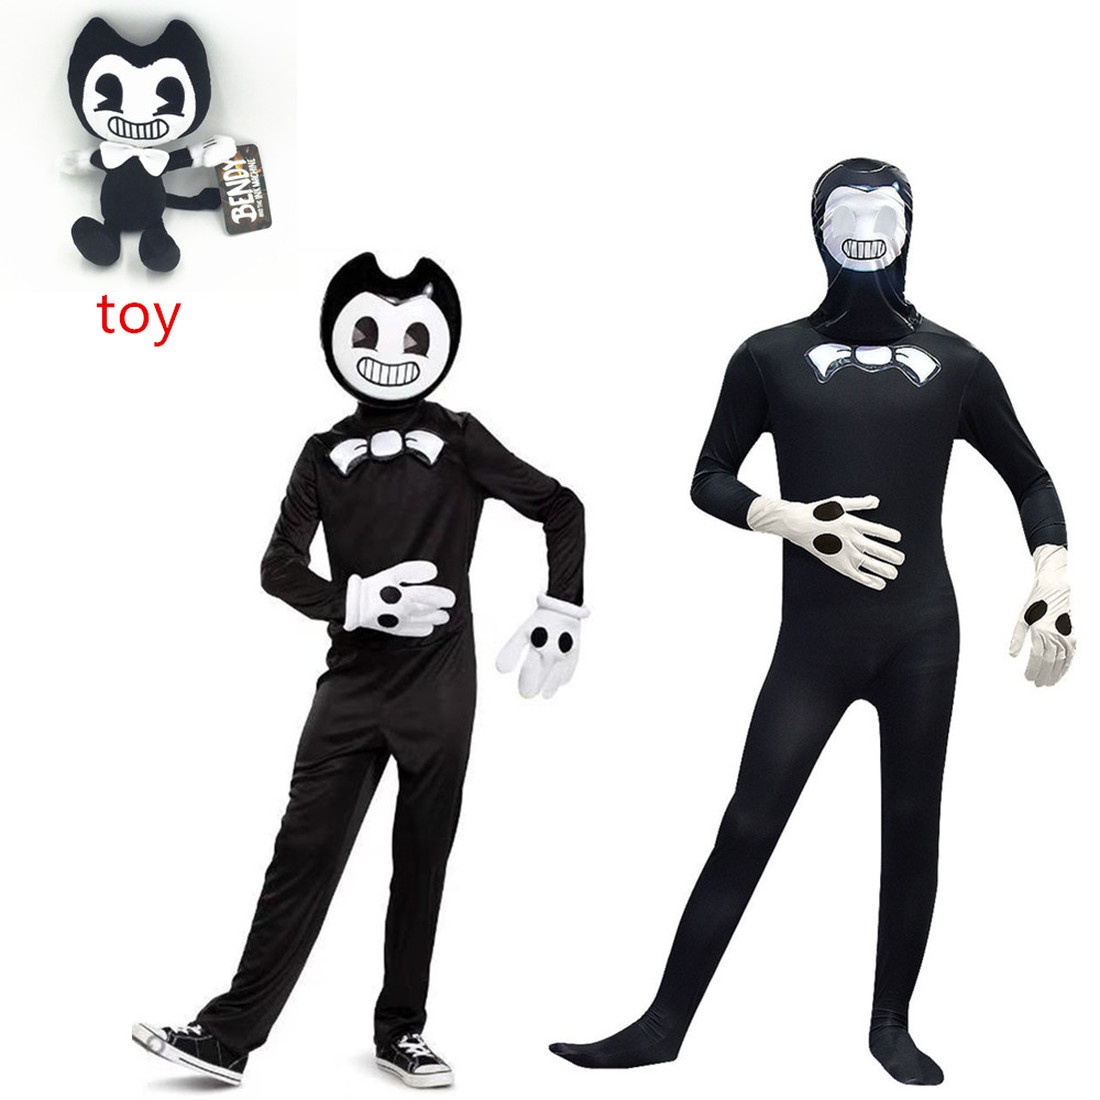 Halloween Costumes For Kids Bandy & Ink Maker Doll Cartoon Thriller Game Cosplay Costumes Kids Halloween BANDY Plush Toy Gifts